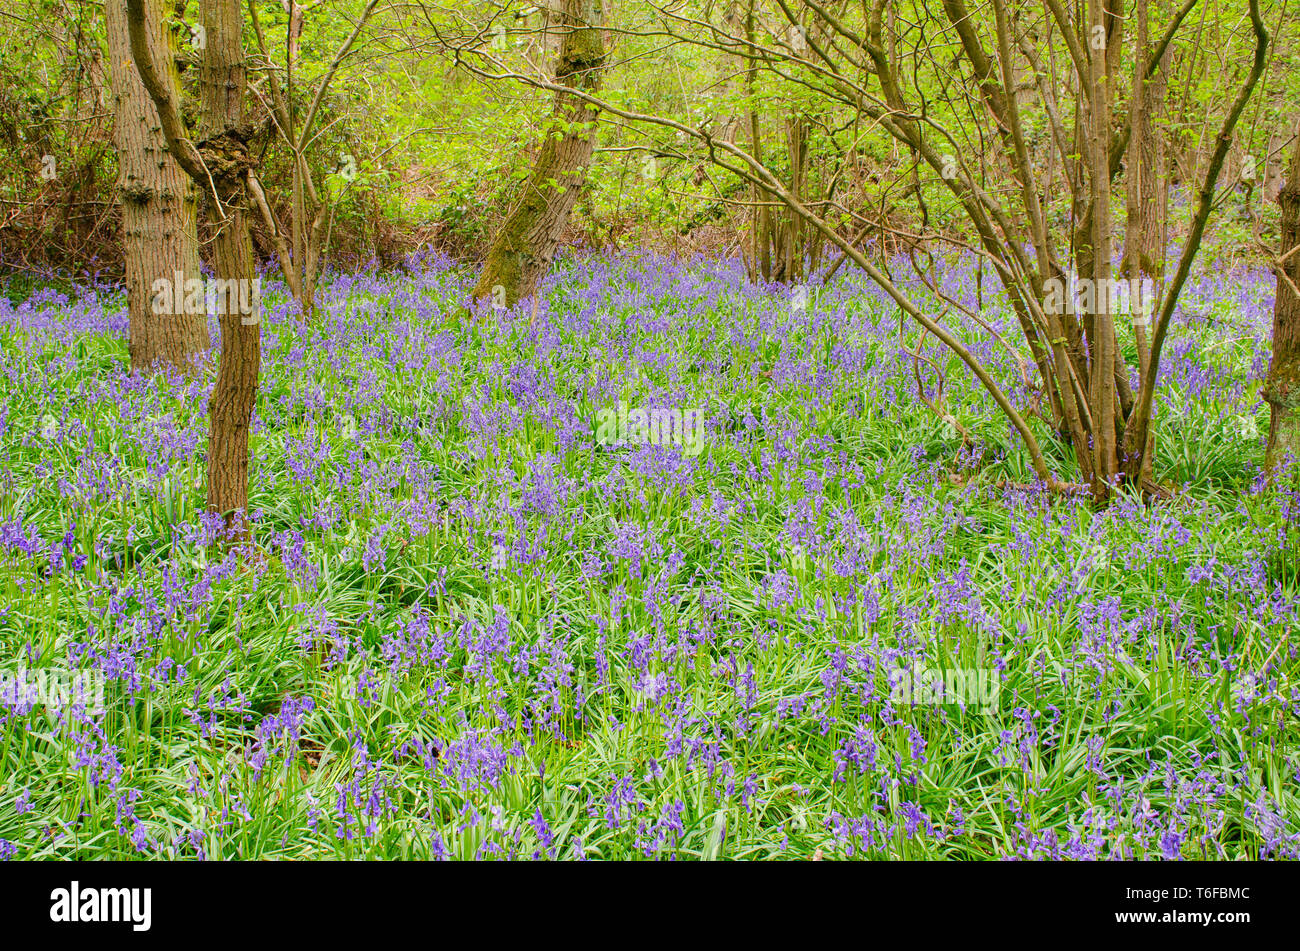 Large field of Bluebells in forest setting - Stock Image